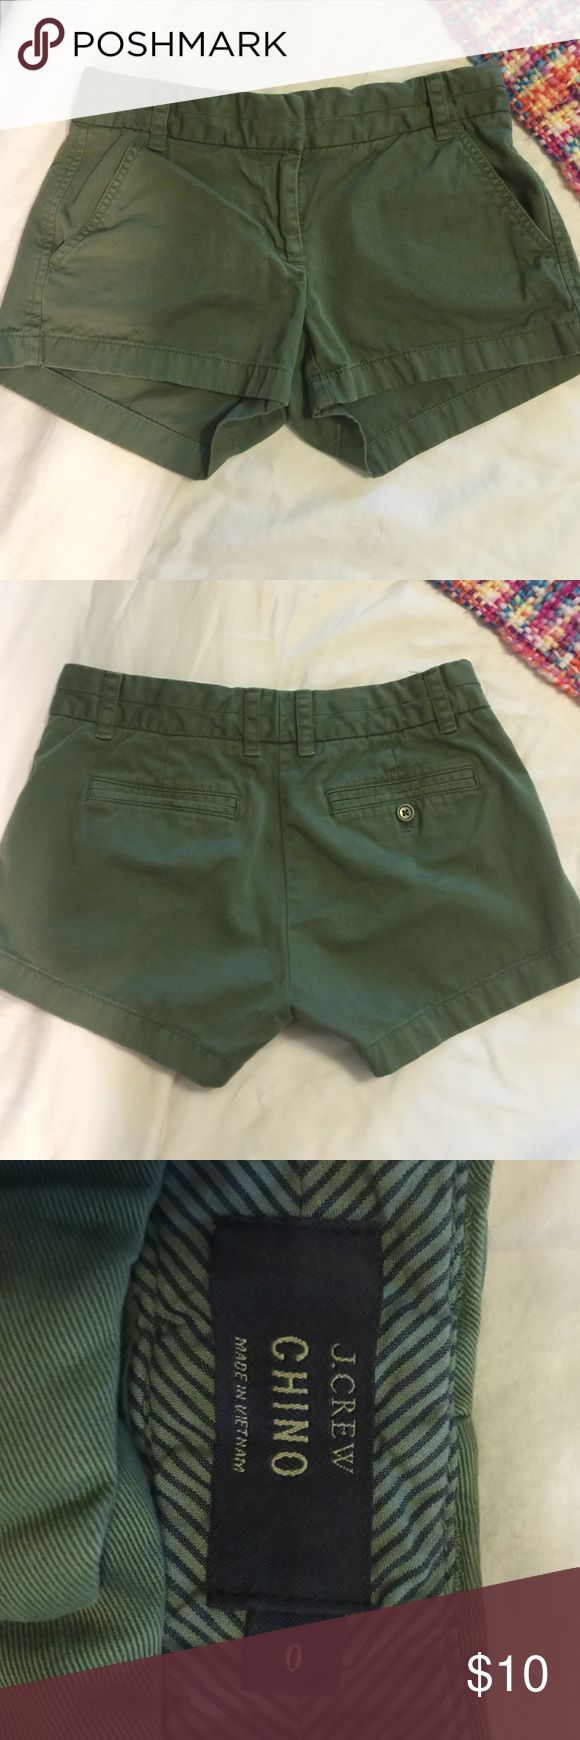 Army green J.Crew dress shorts Super cute army green shorts. Great paired with a white tank top! J. Crew Shorts